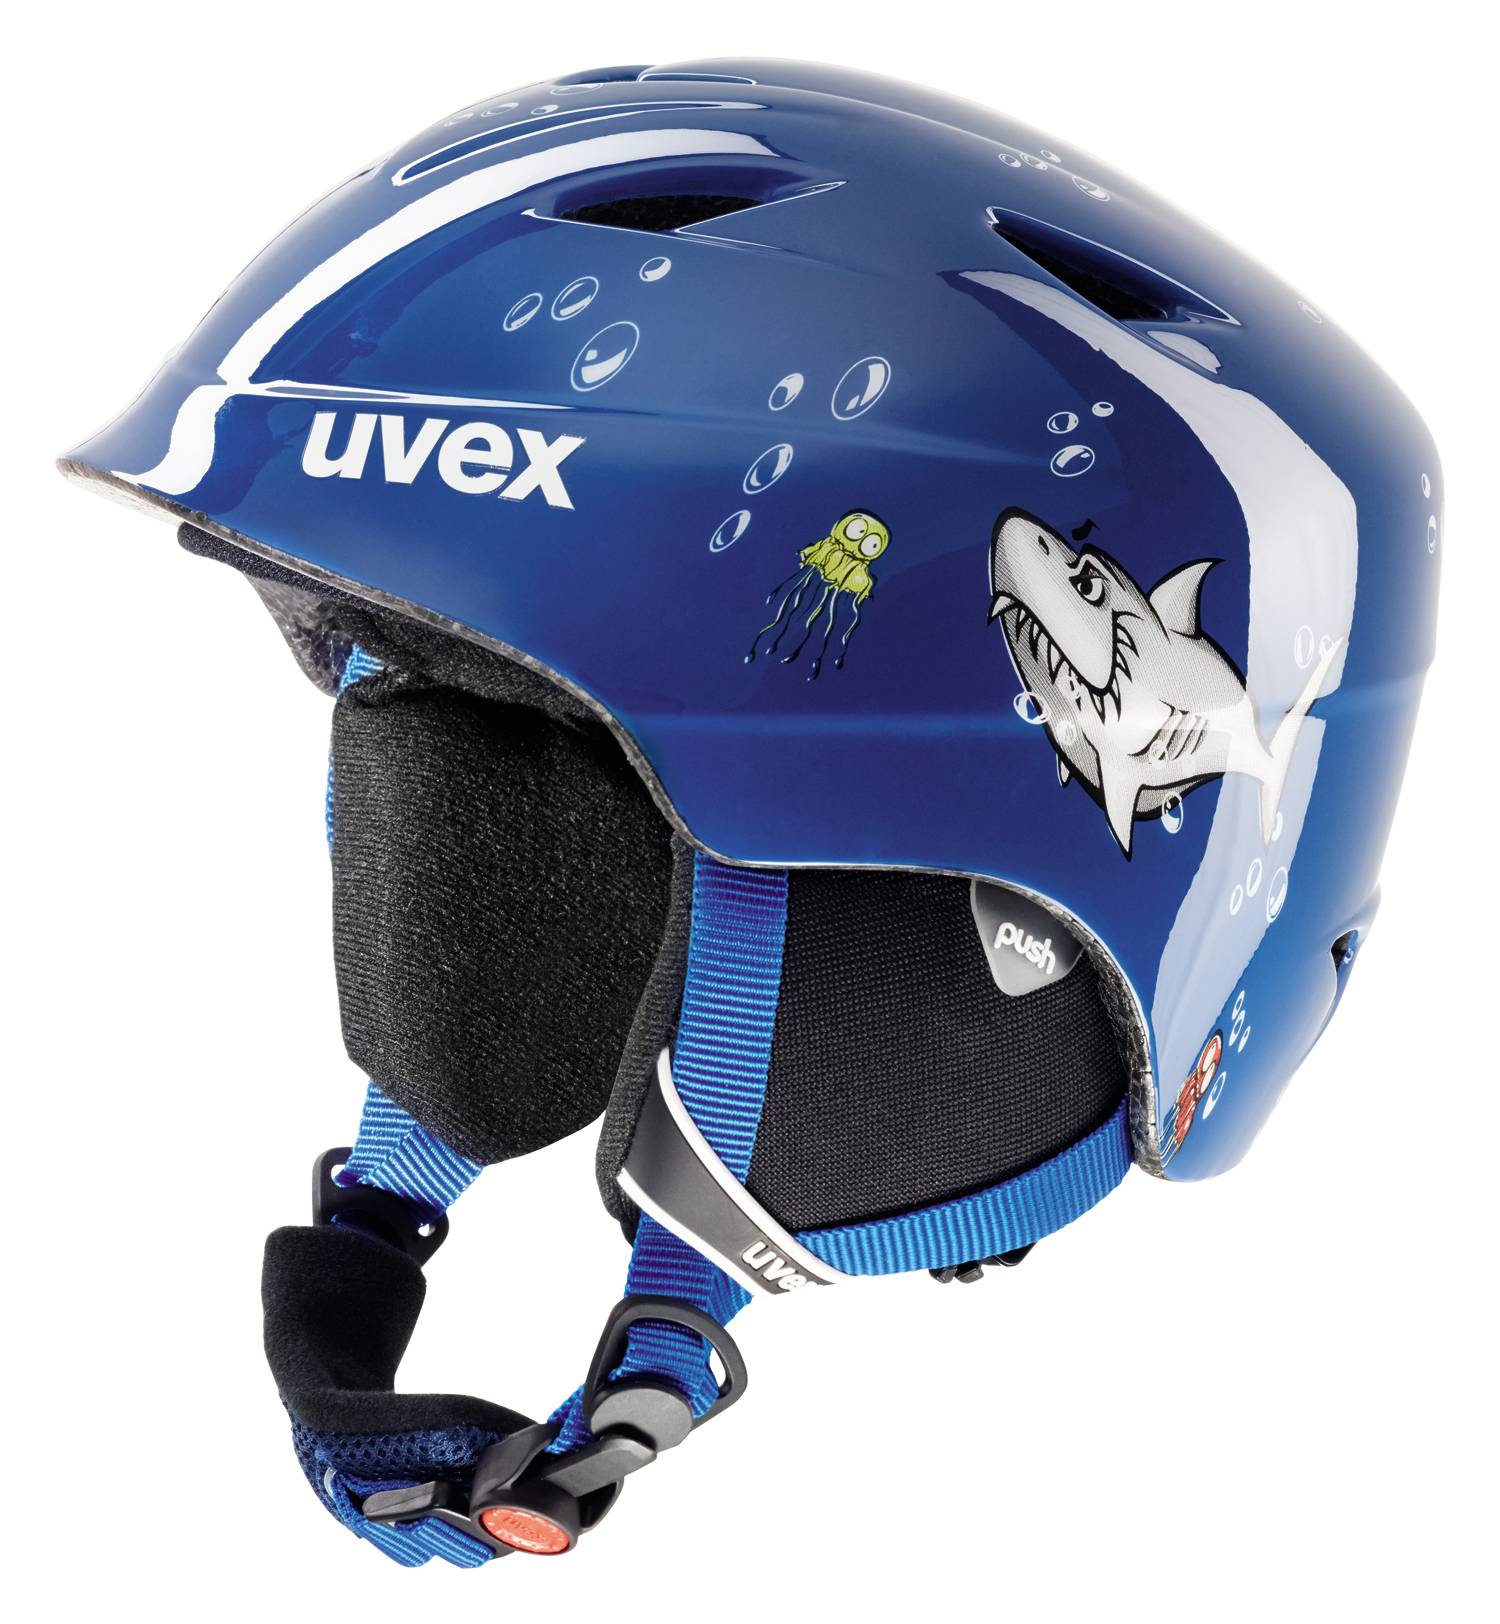 UVEX AIRWING 2, blue shark S566132470 52-54 cm